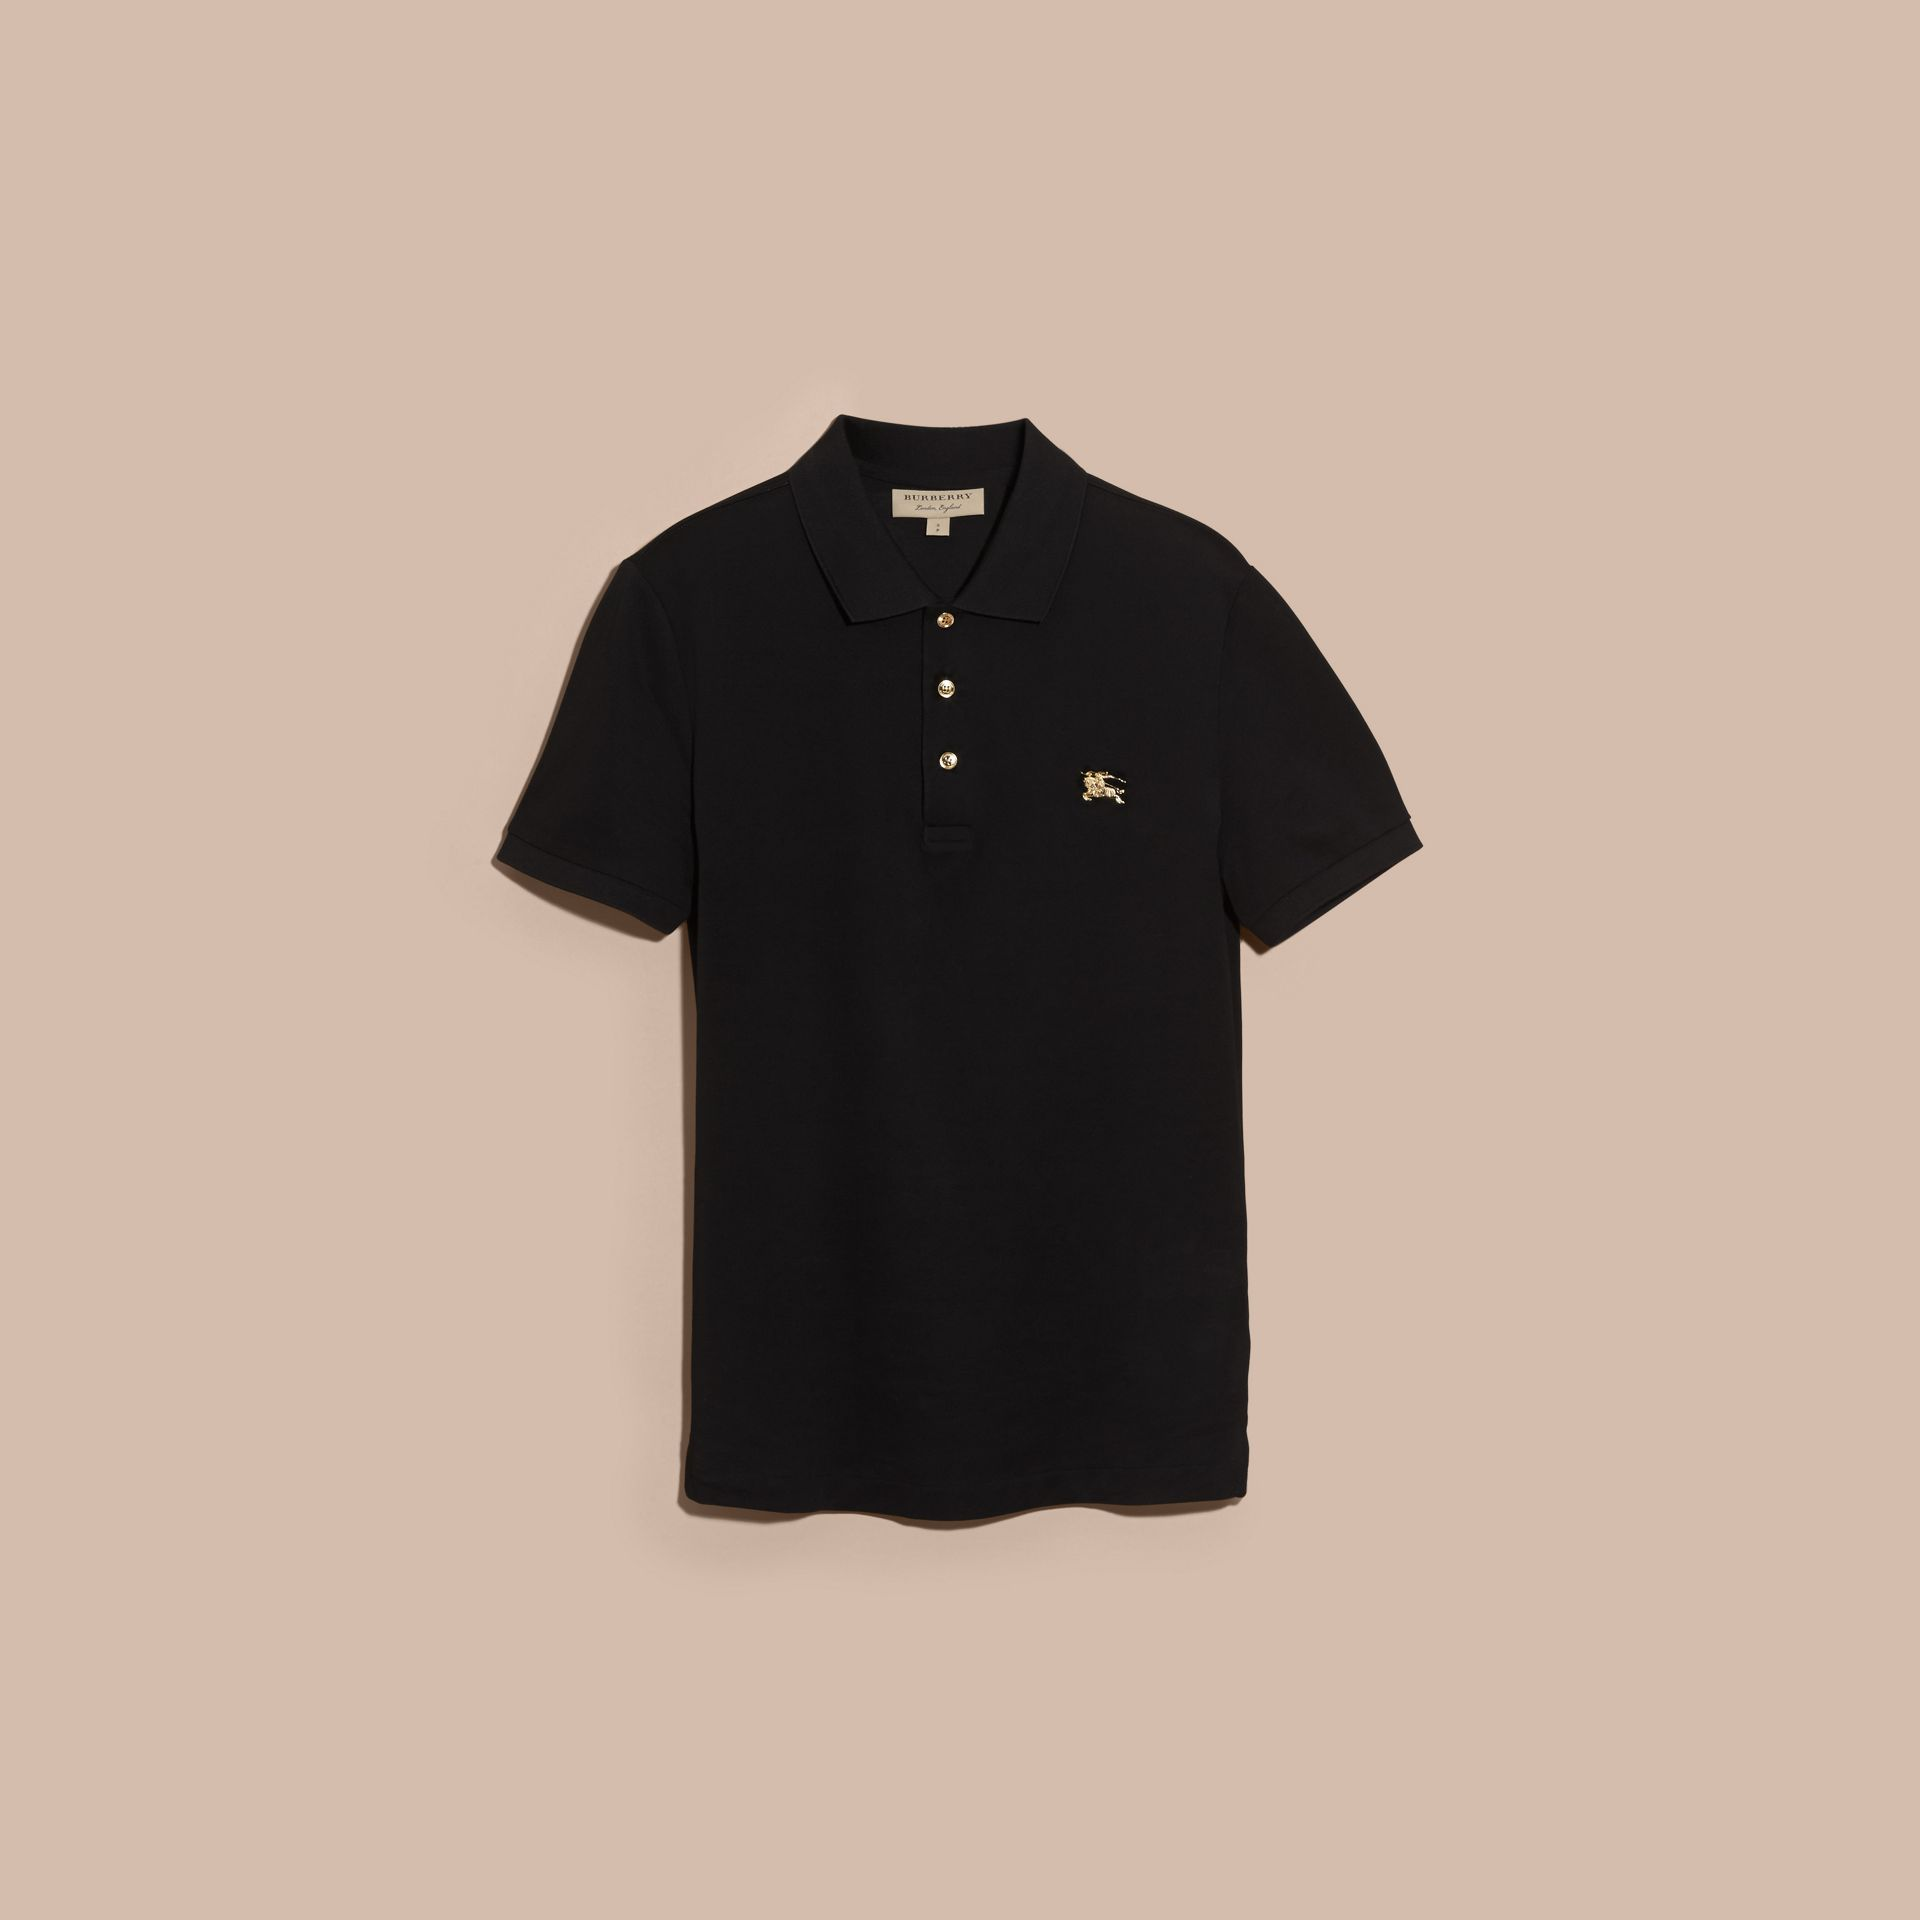 Cotton Piqué Polo Shirt in Black - Men | Burberry Australia - gallery image 4